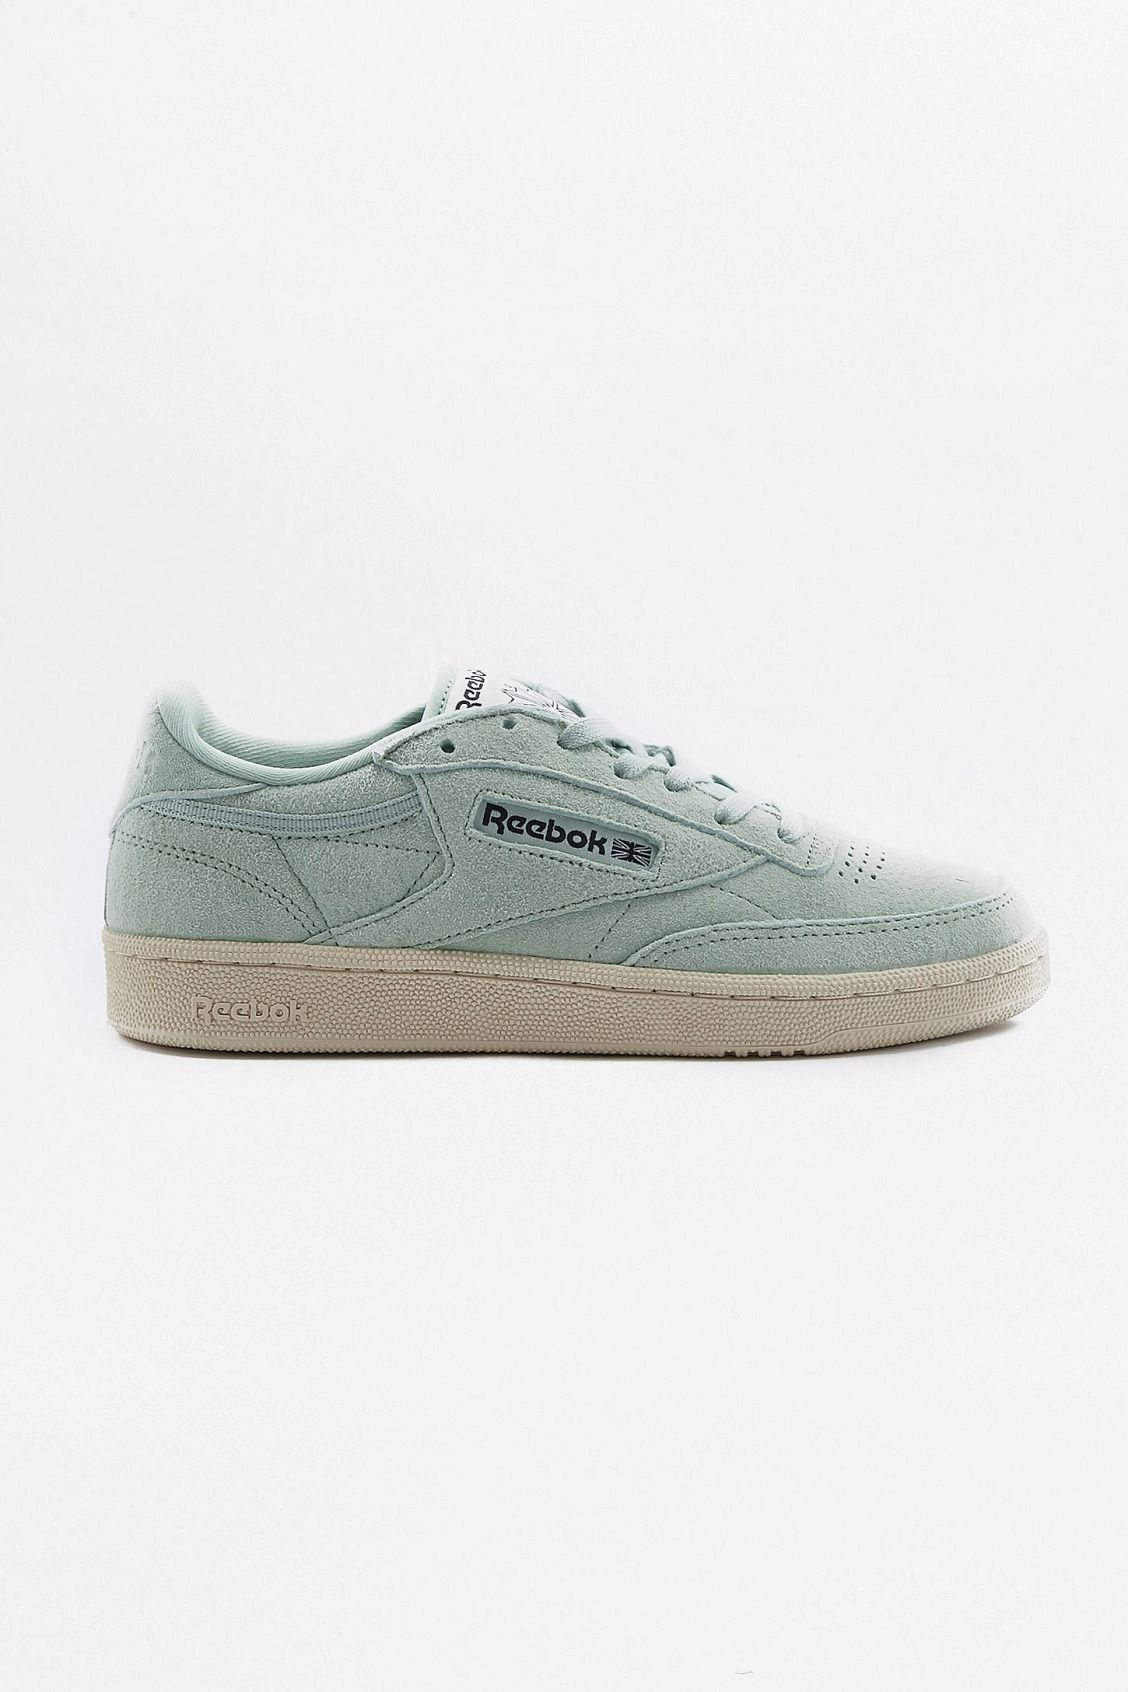 2038580368e1 Reebok Club C 85 Pastel Mint Trainers